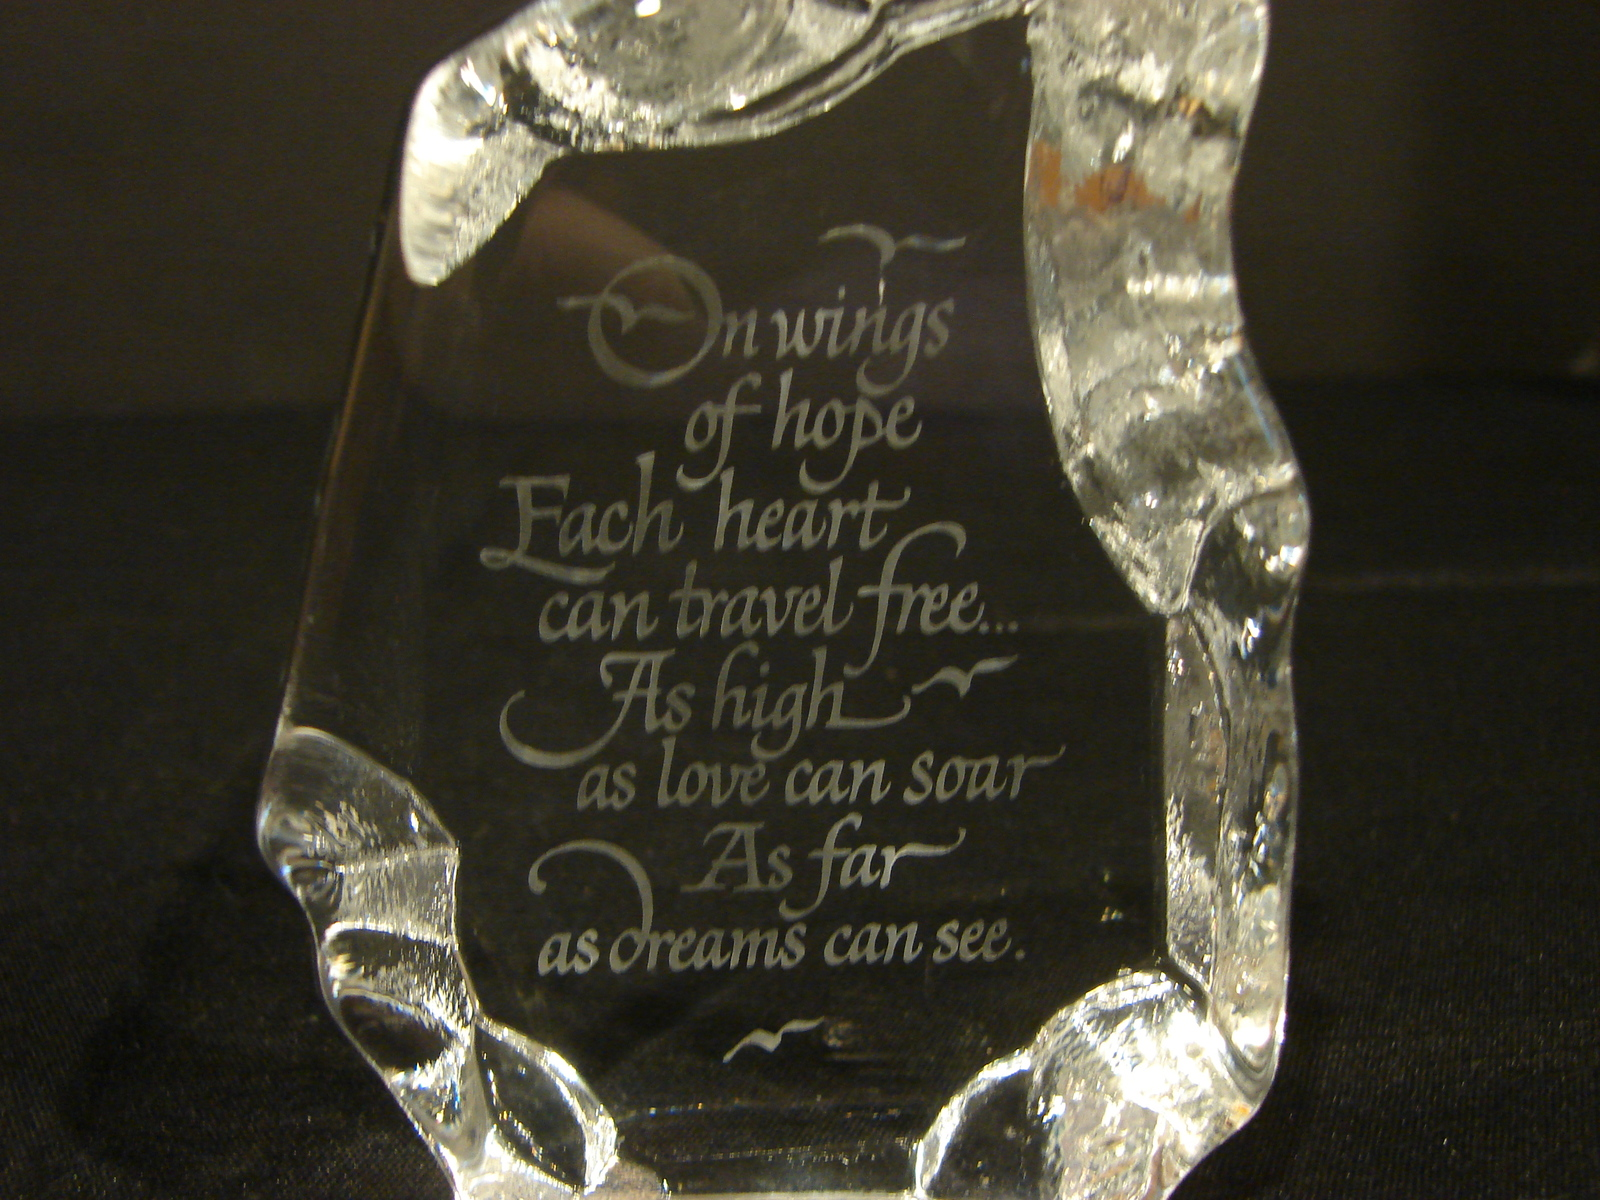 """Engraved Glass """"Iceberg"""" Paperweight: """"On Wings of Hope"""" - $3.99"""